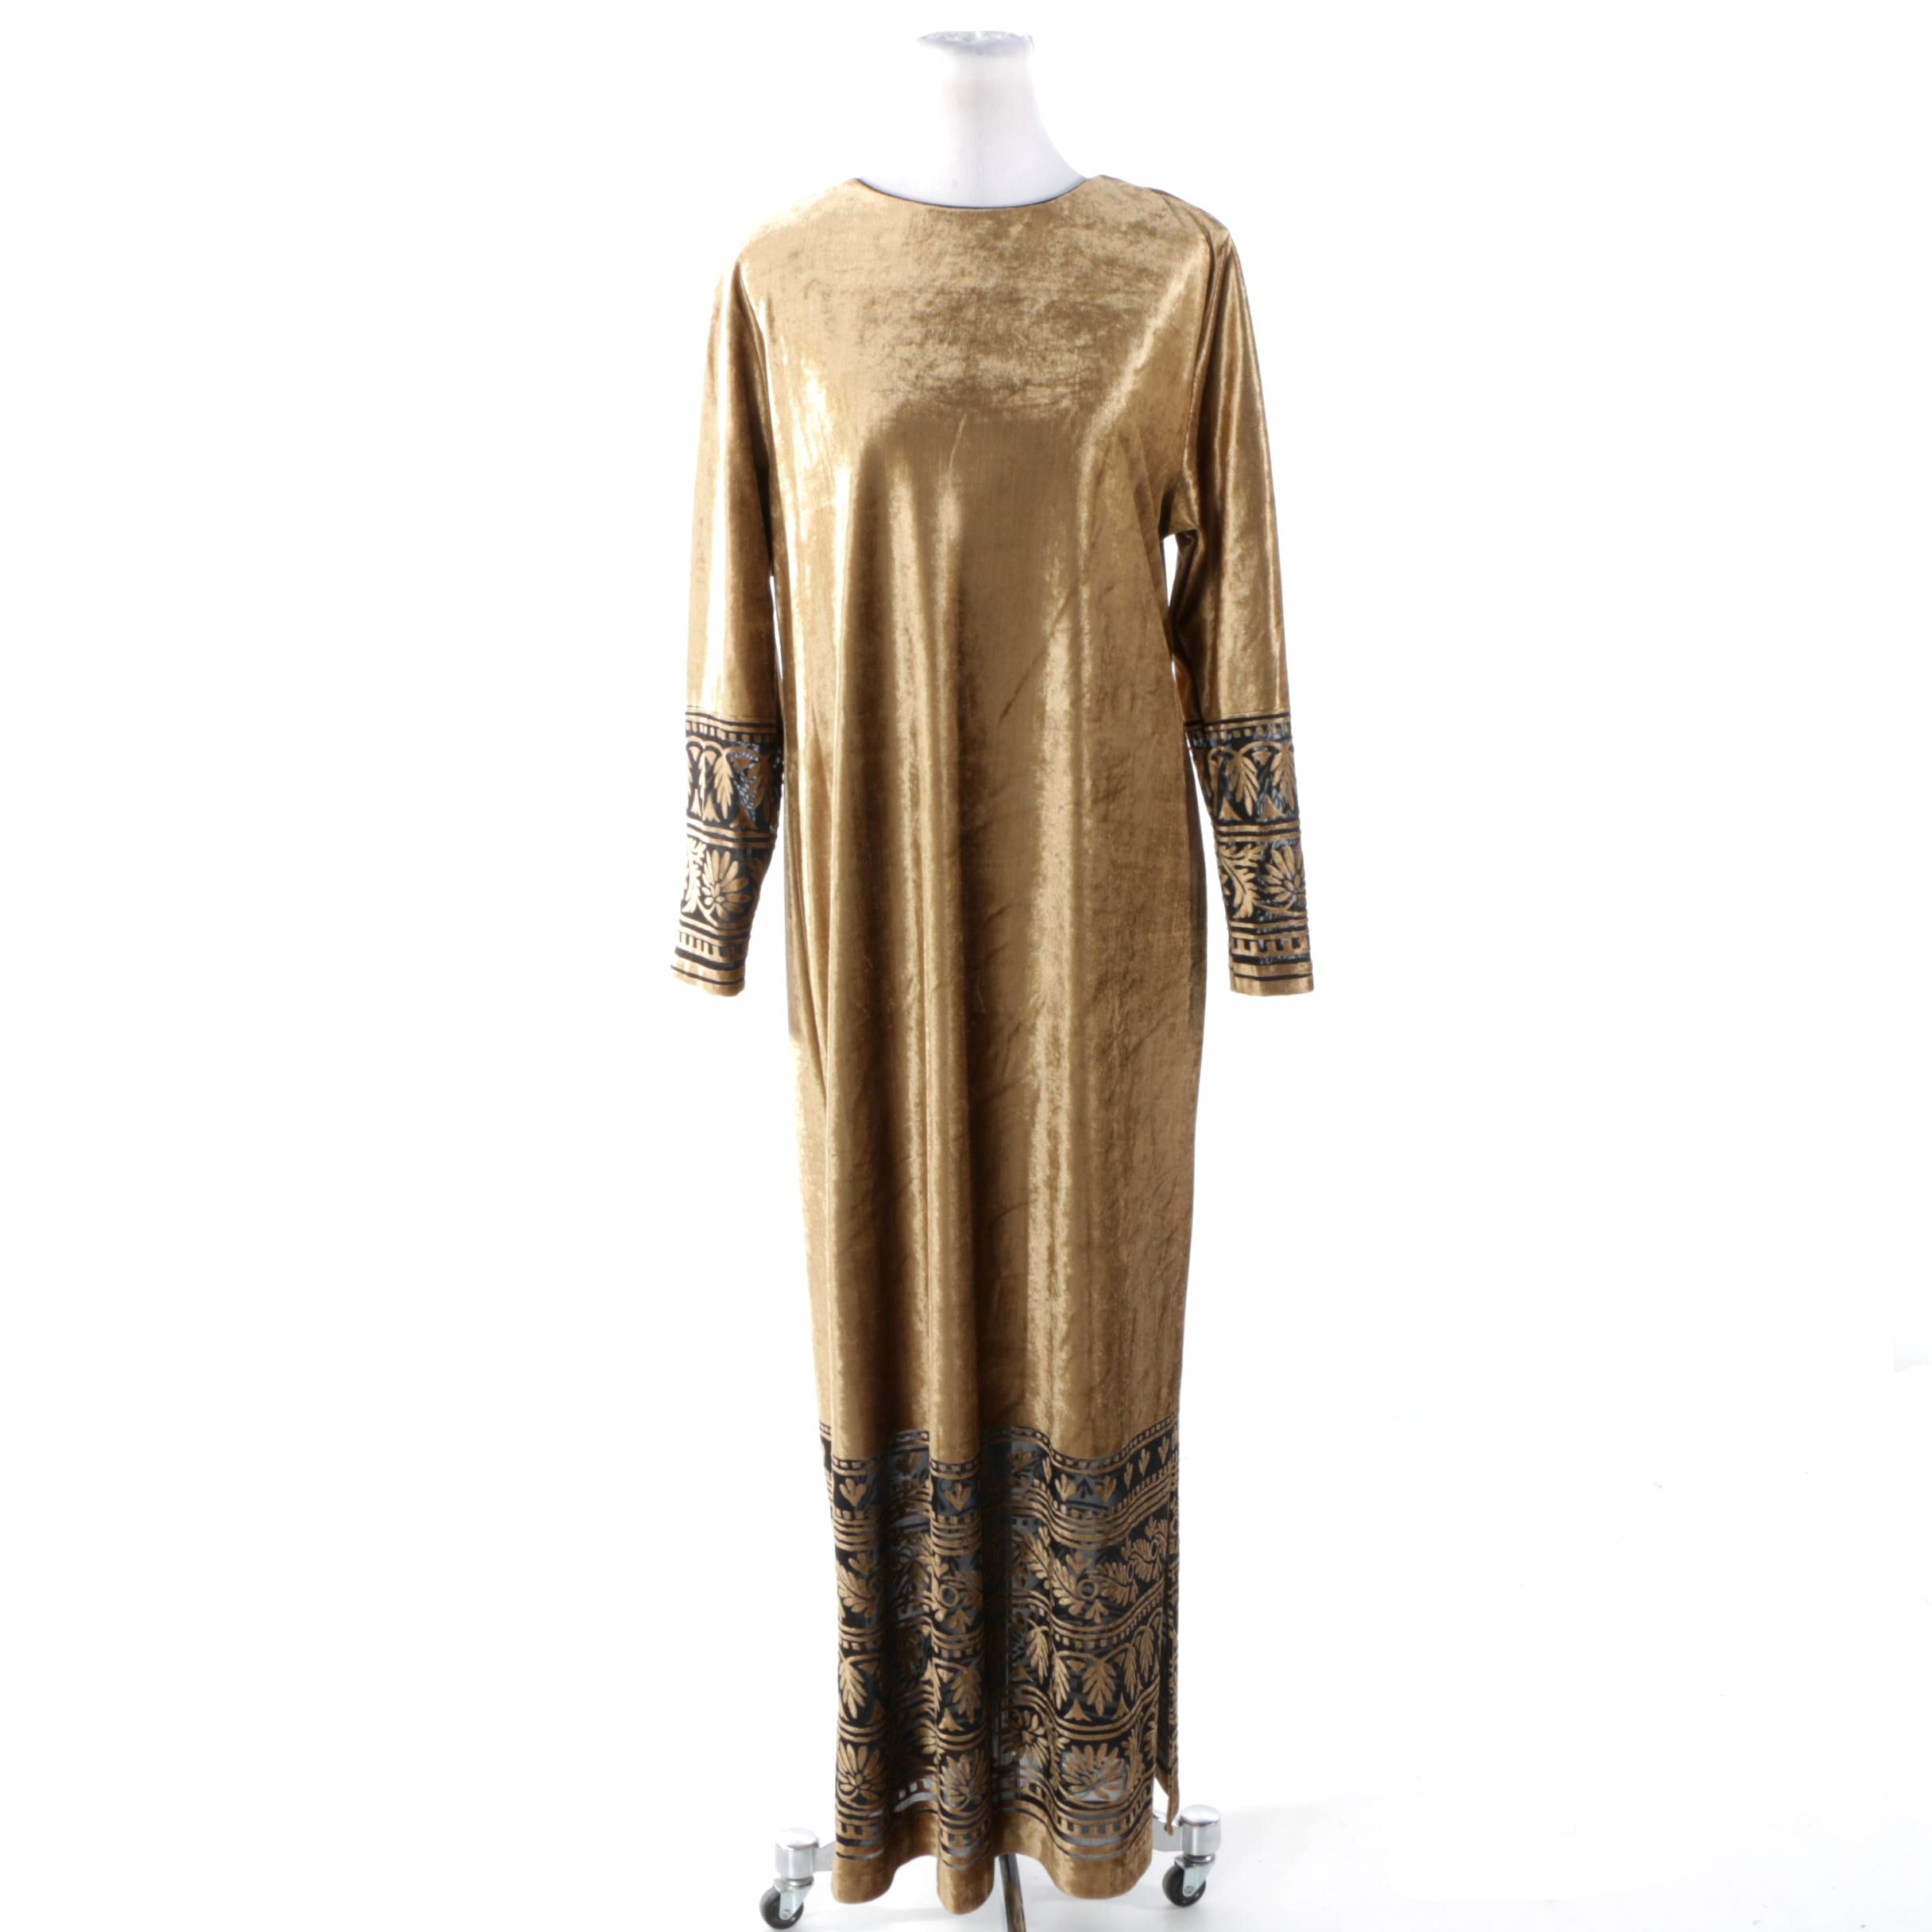 Vintage Ruth Norman Golden Velour Dress Trimmed in Black